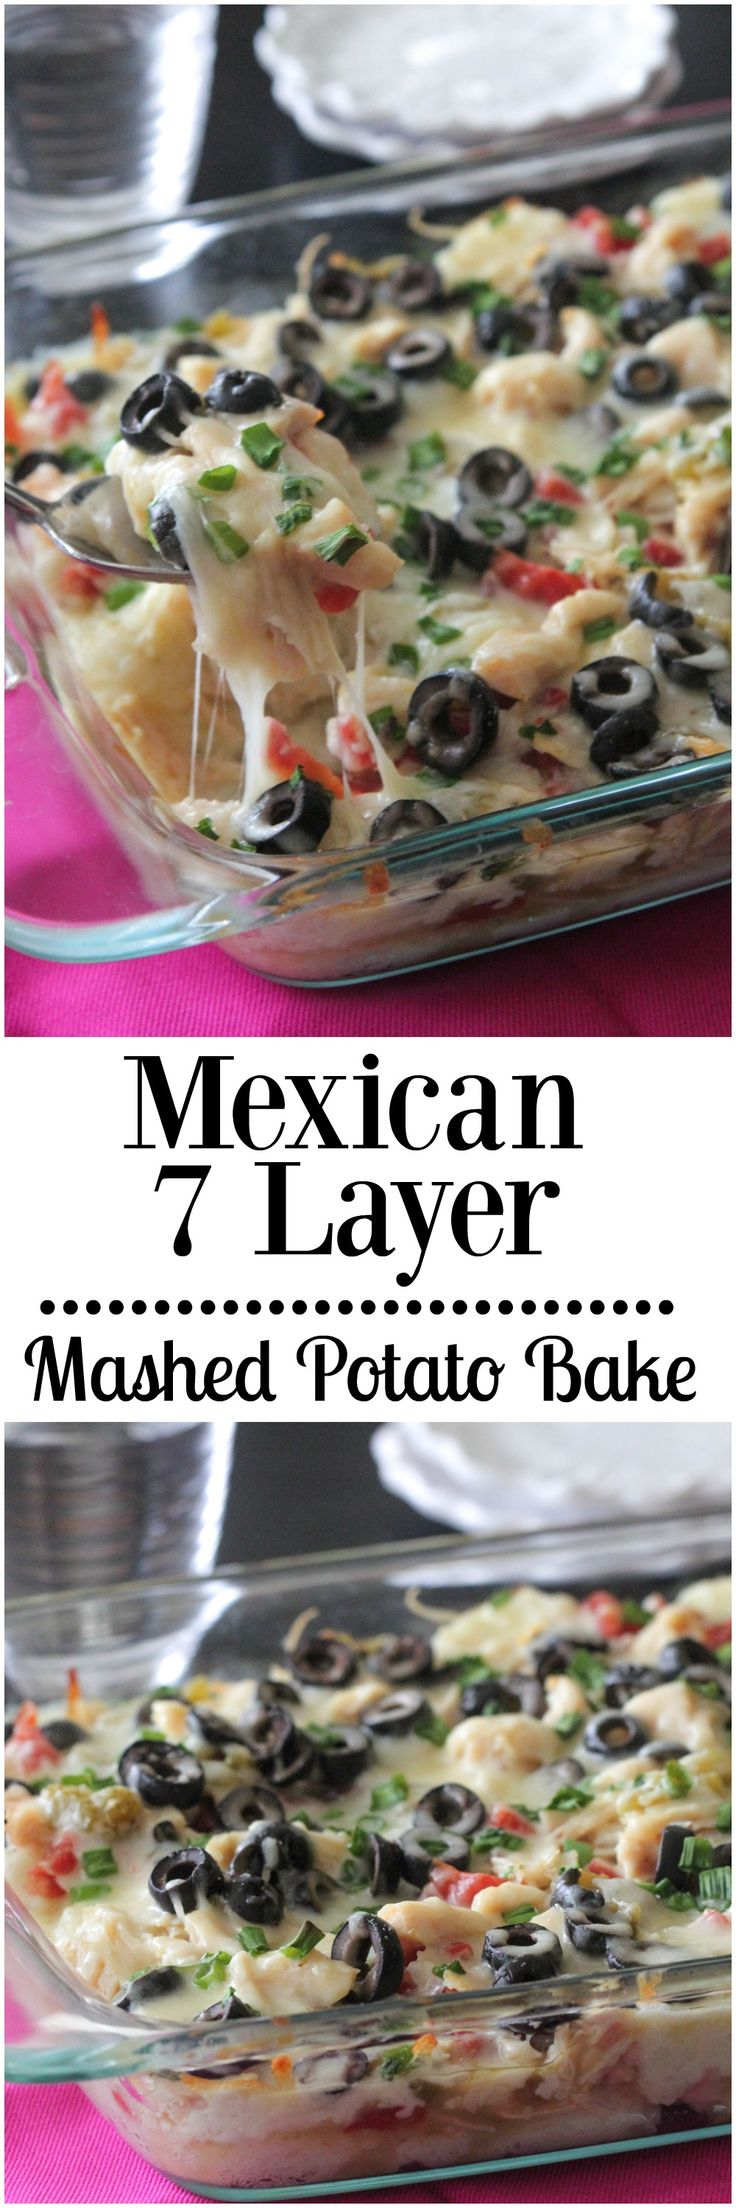 10246 best best comfort food recipes images on pinterest drink mexican 7 layer mashed potato bake forumfinder Images